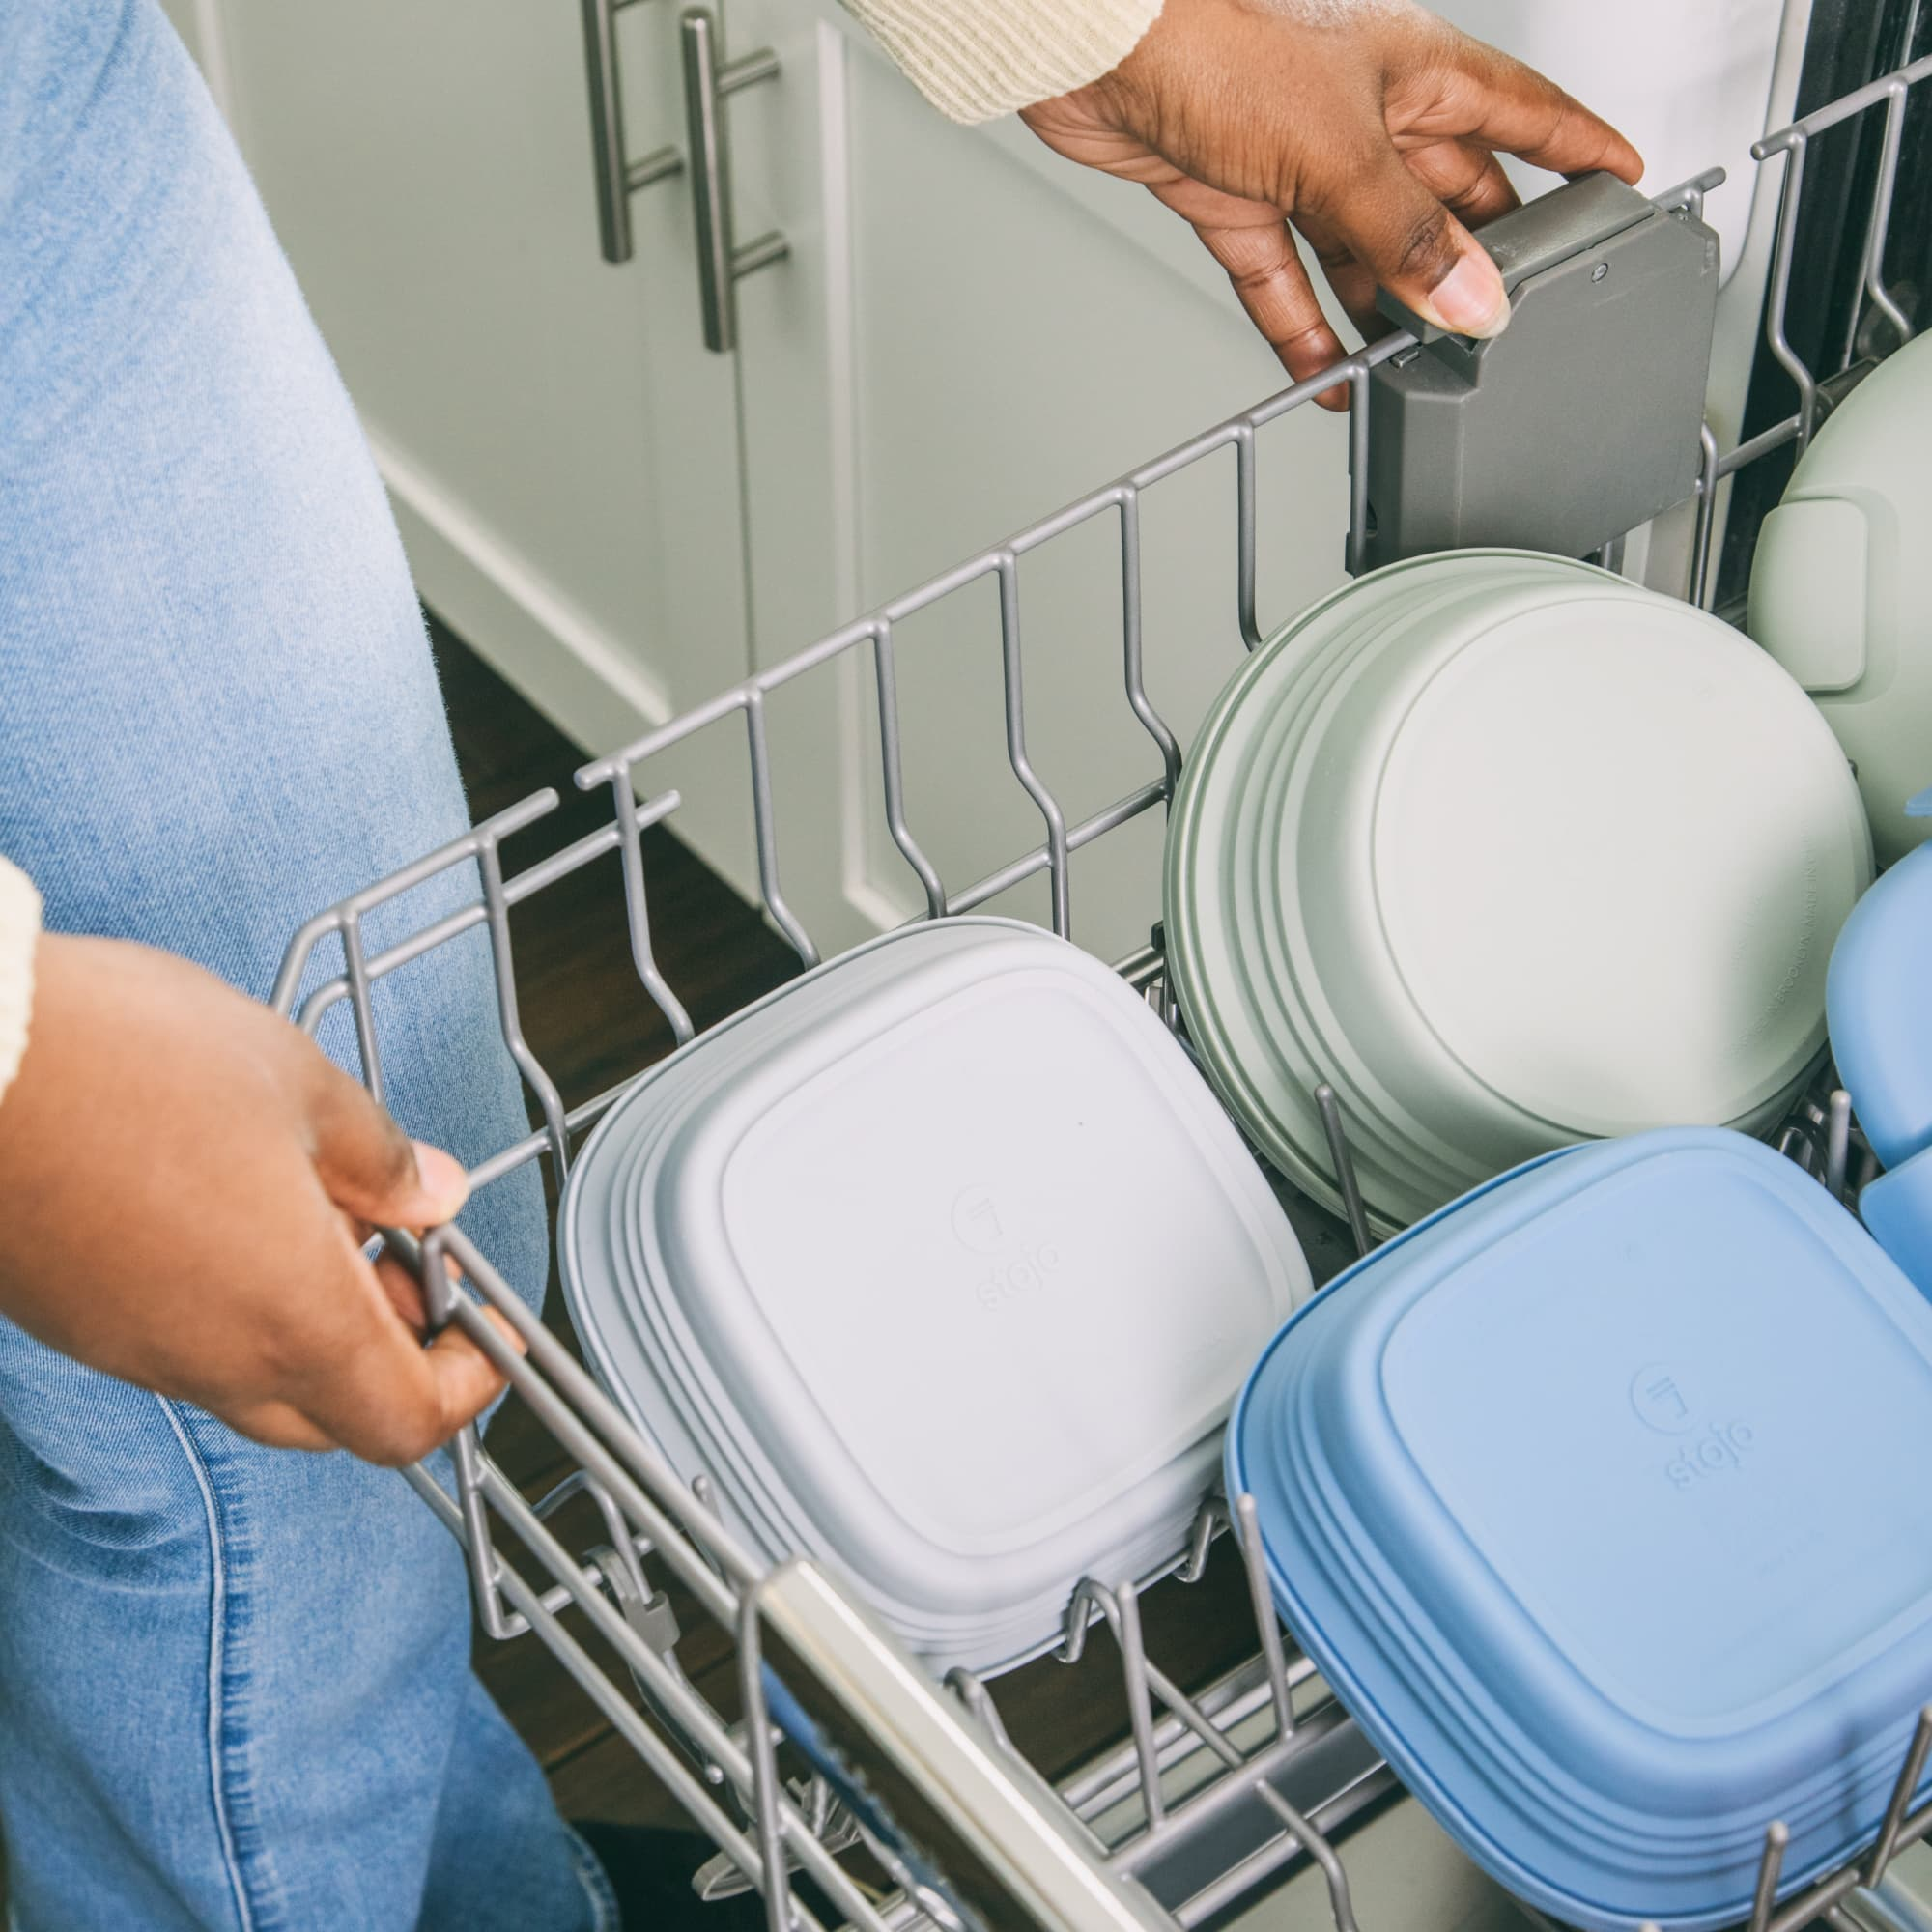 Dishwasher and microwave safe